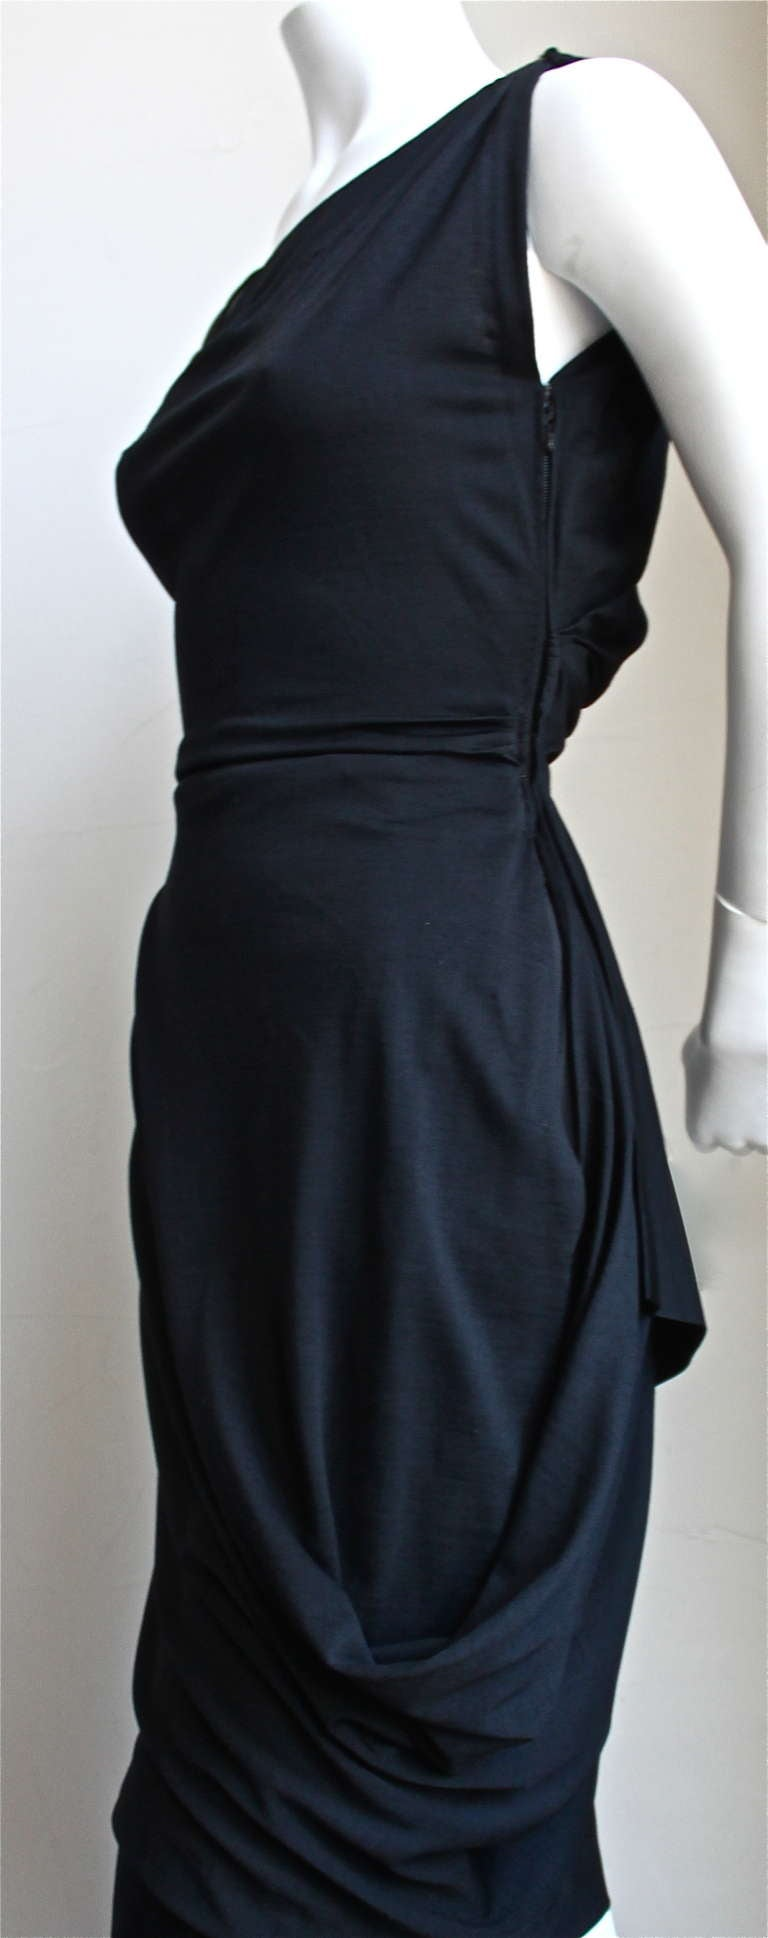 1950's PEDRO RODRIGUEZ haute couture asymmetrical draped wool jersey dress 4